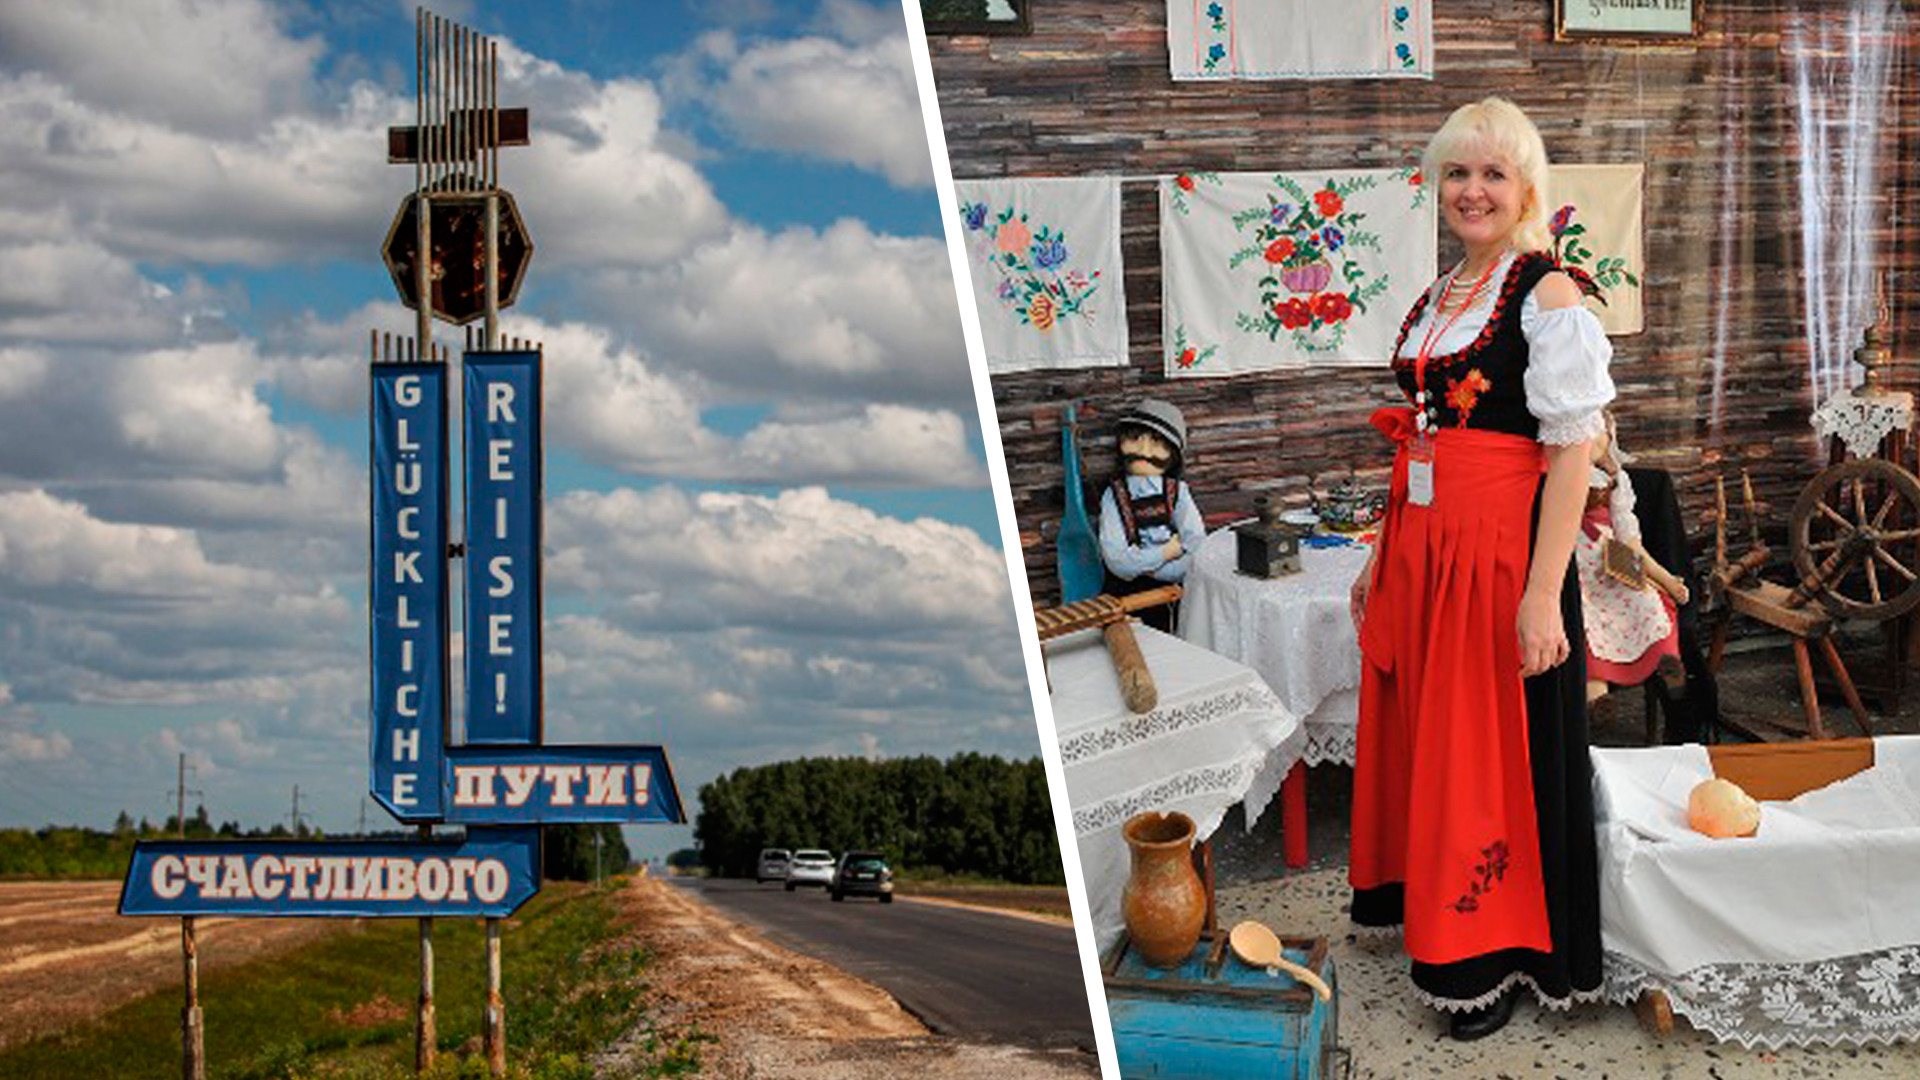 Left: The road sign in Altai. Right: Azovo local museum.